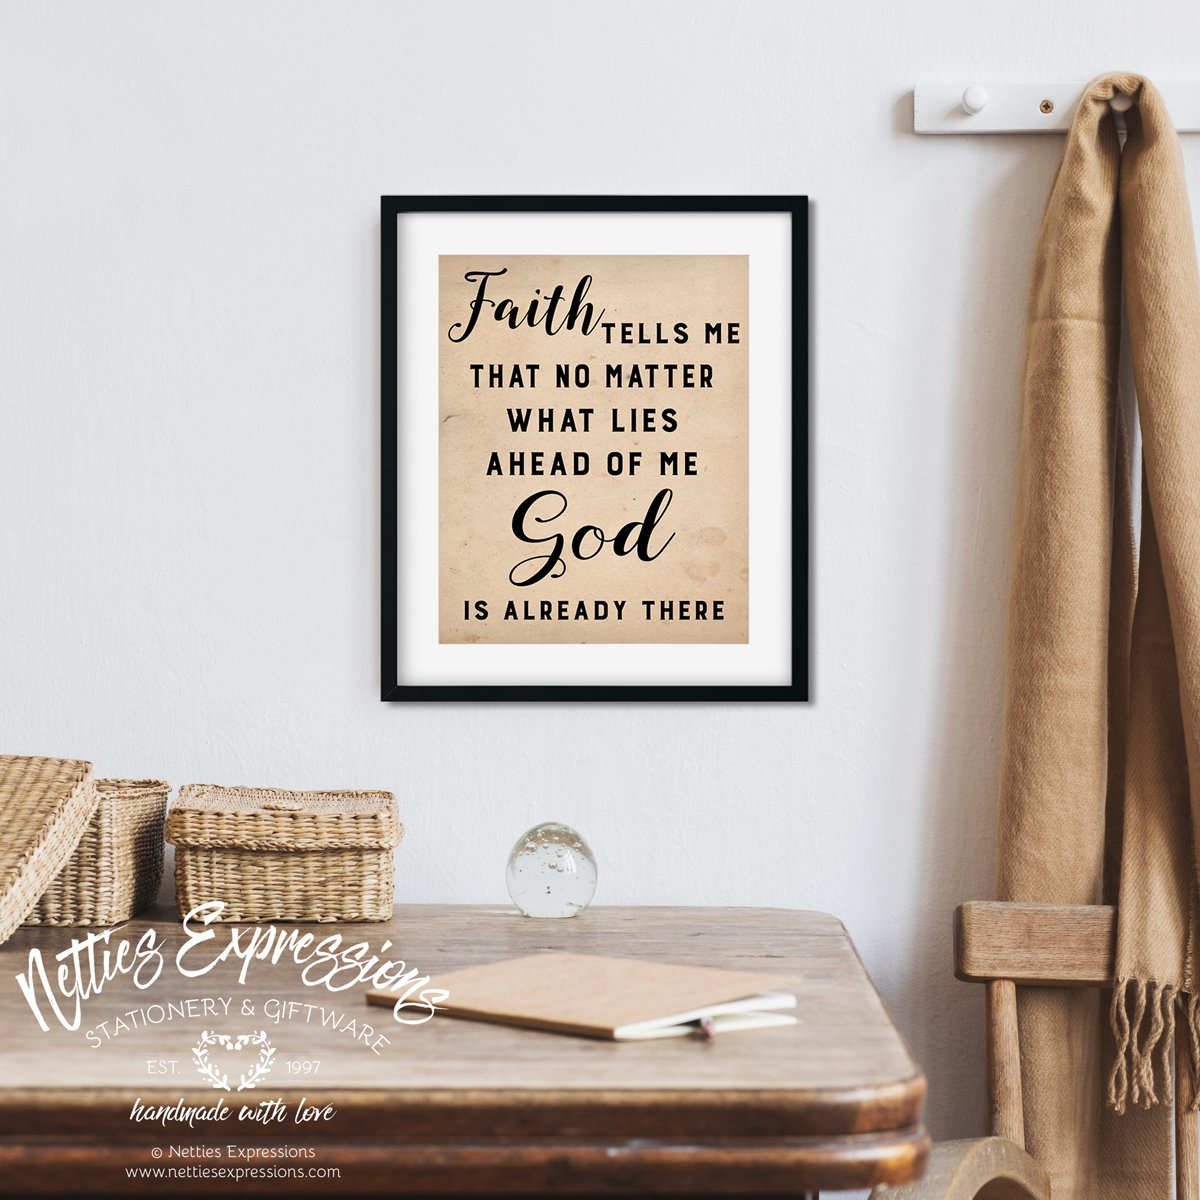 Faith tells me - Art Print - Netties Expressions